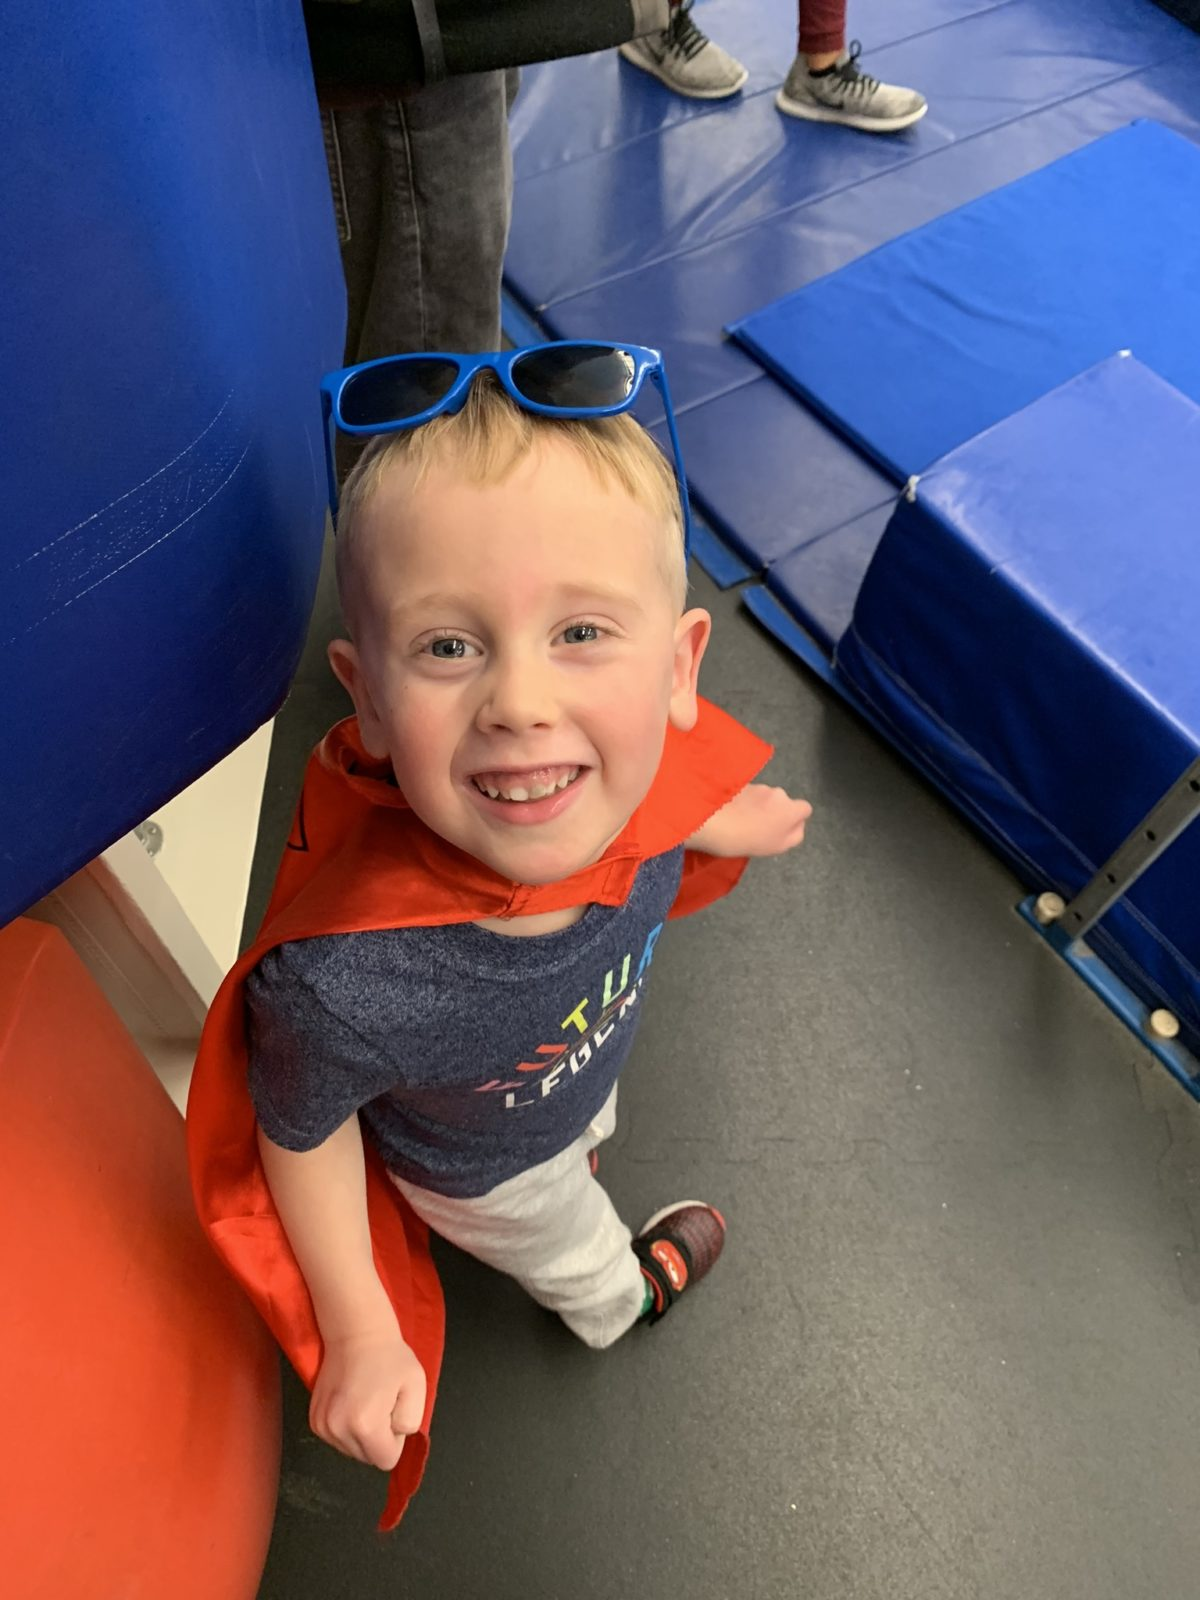 Superman watching Ellie at gymnastics